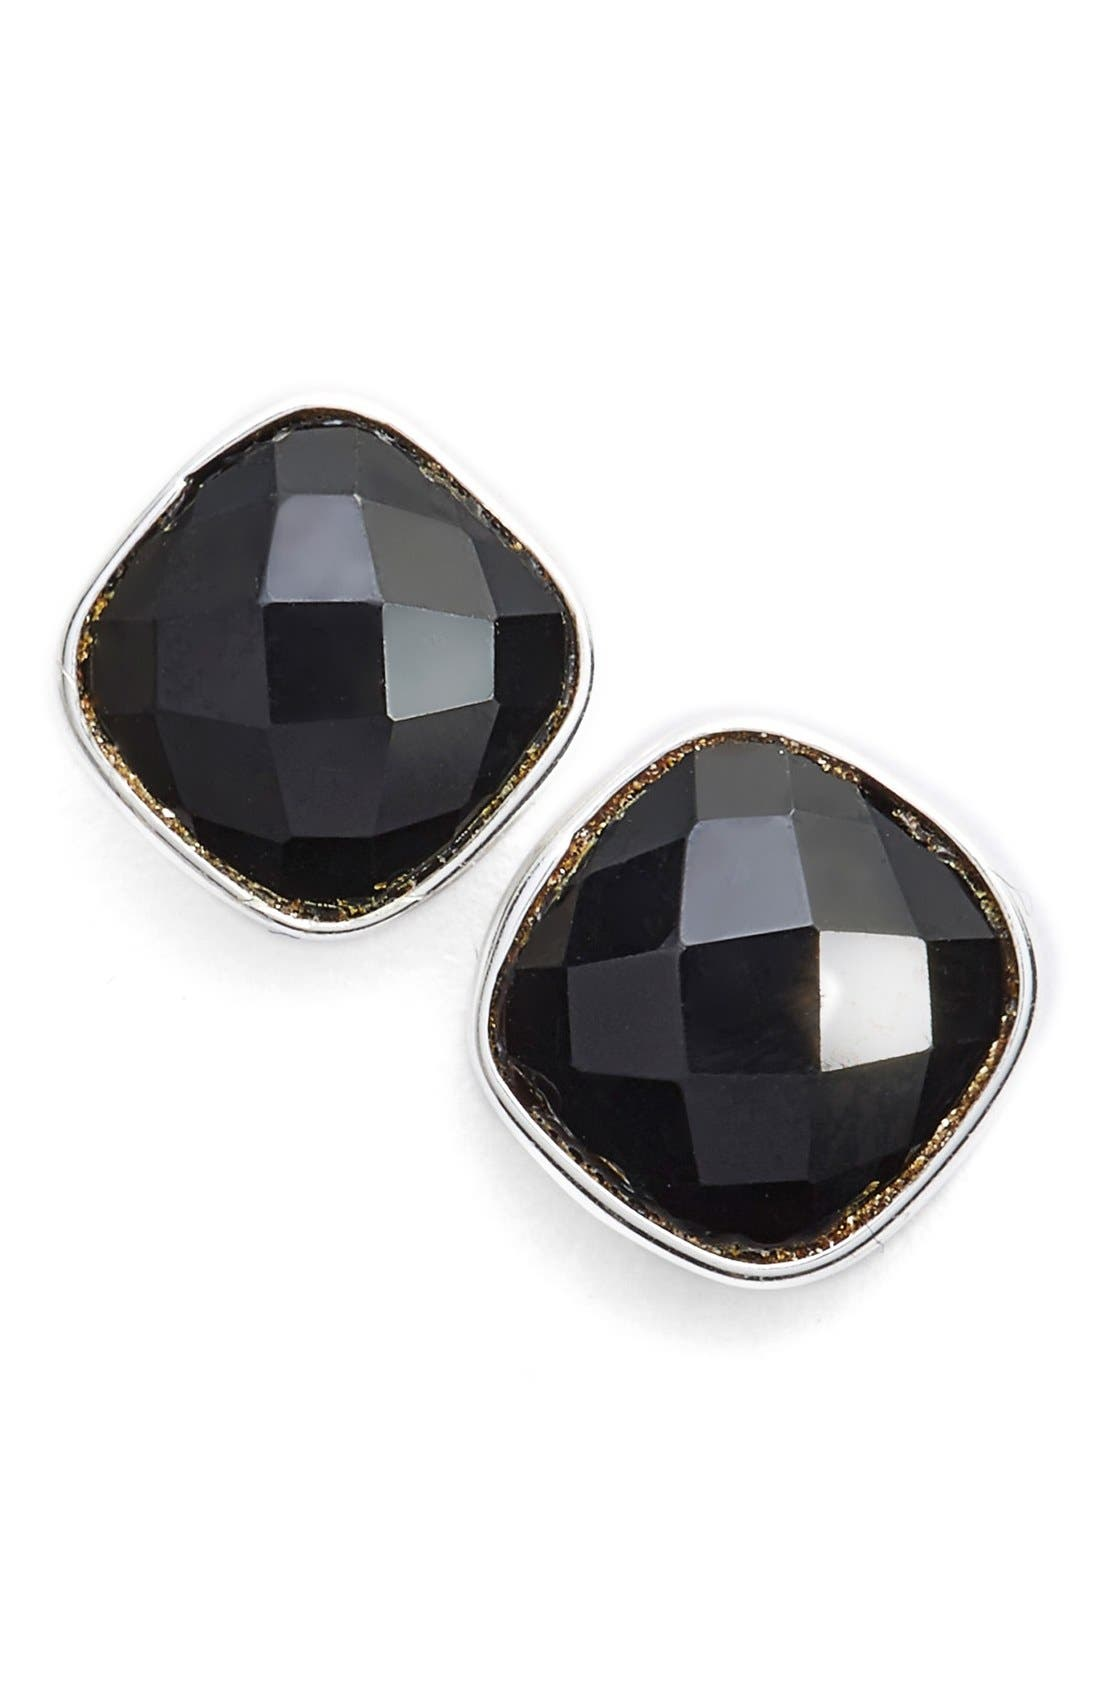 Semiprecious Stone Stud Earrings,                             Main thumbnail 1, color,                             040